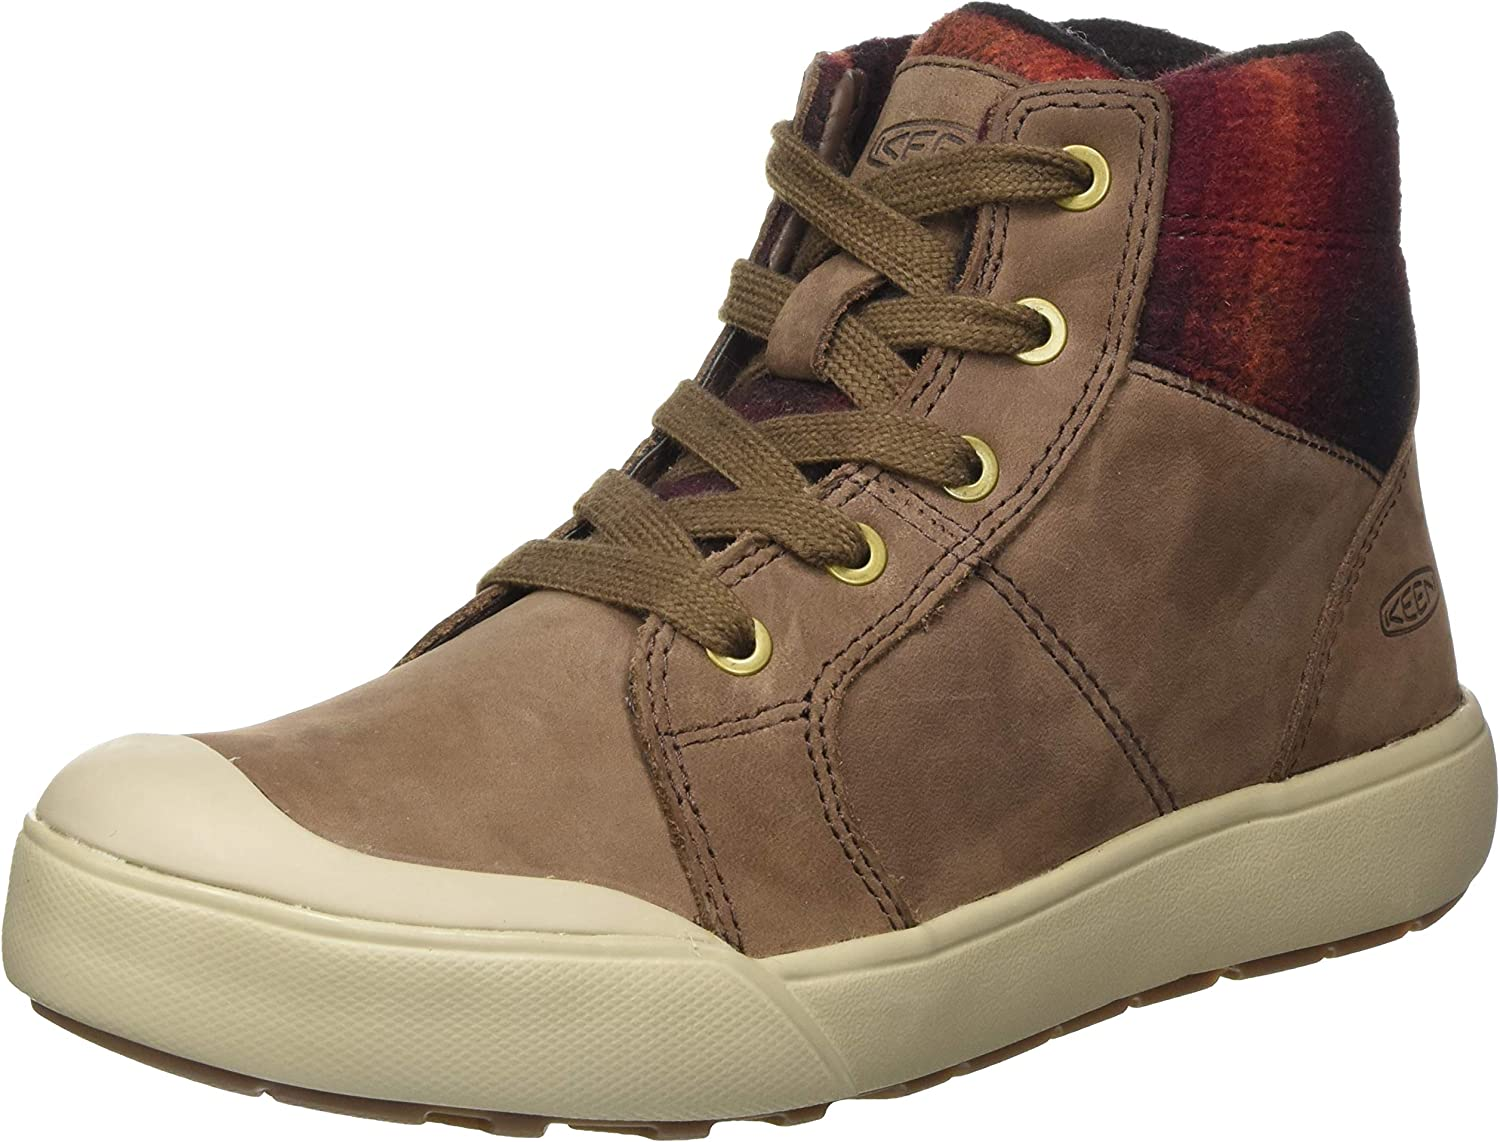 KEEN Women's Elena Mid Height Ankle Boot Hiking